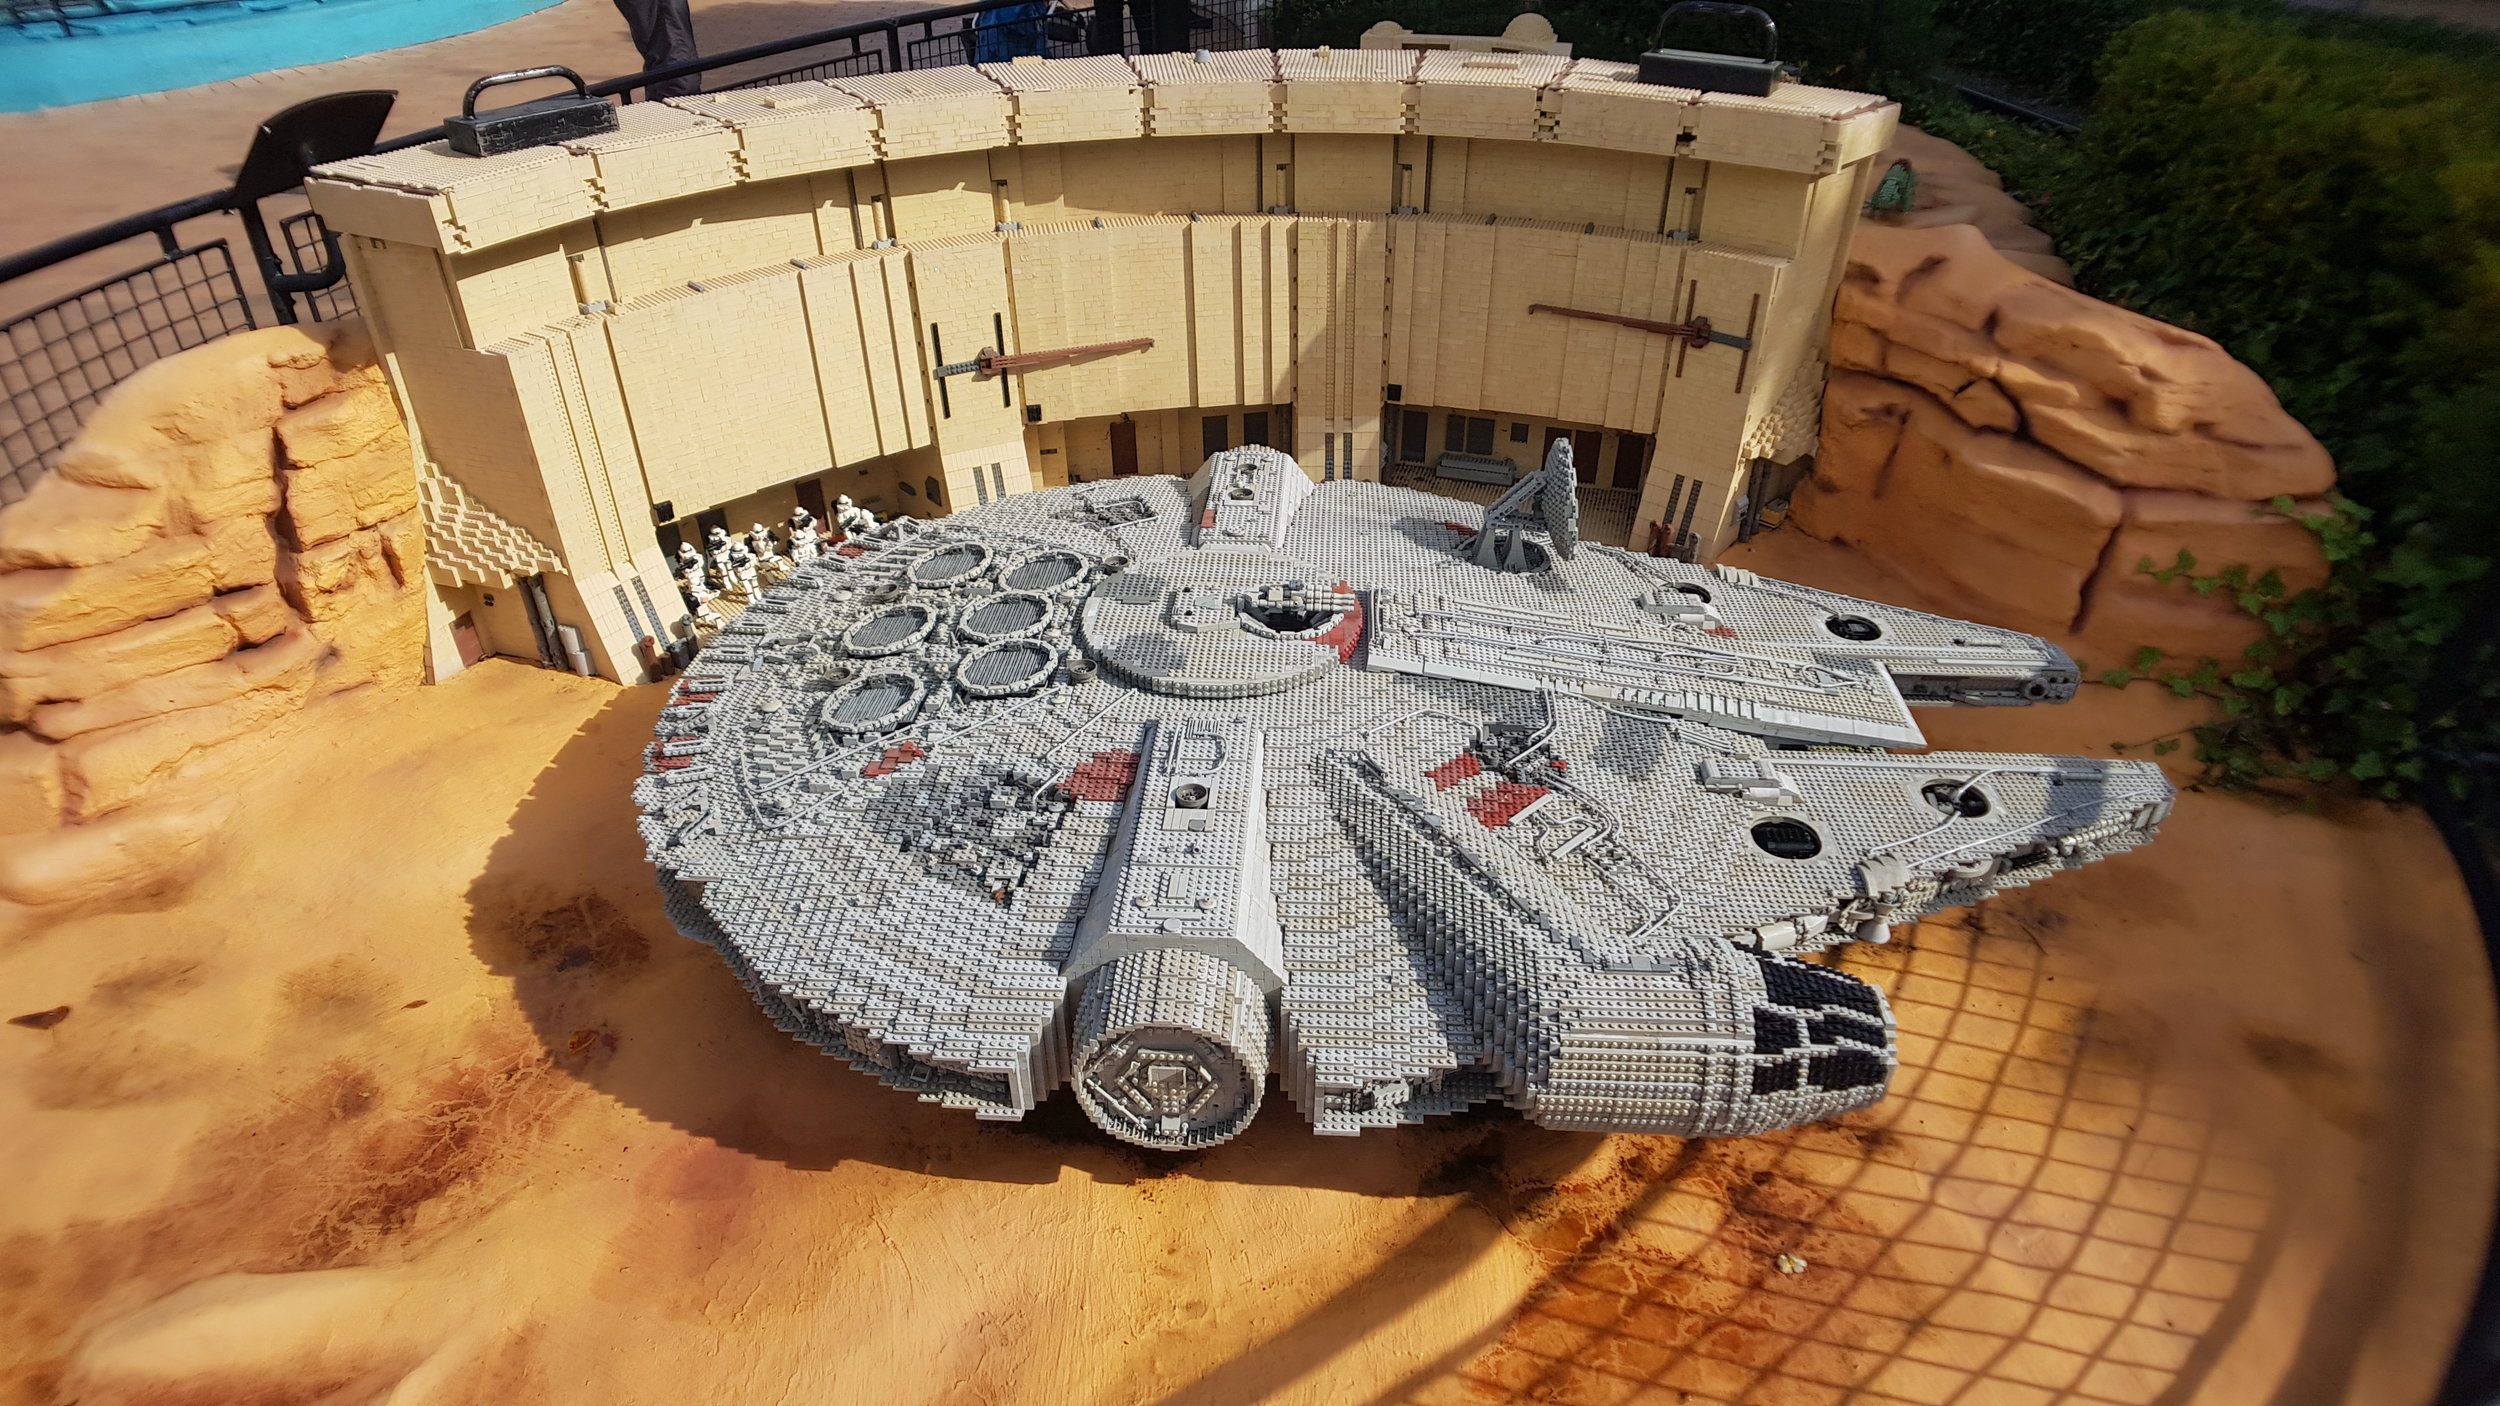 It's hard to go past the Star Wars Lego